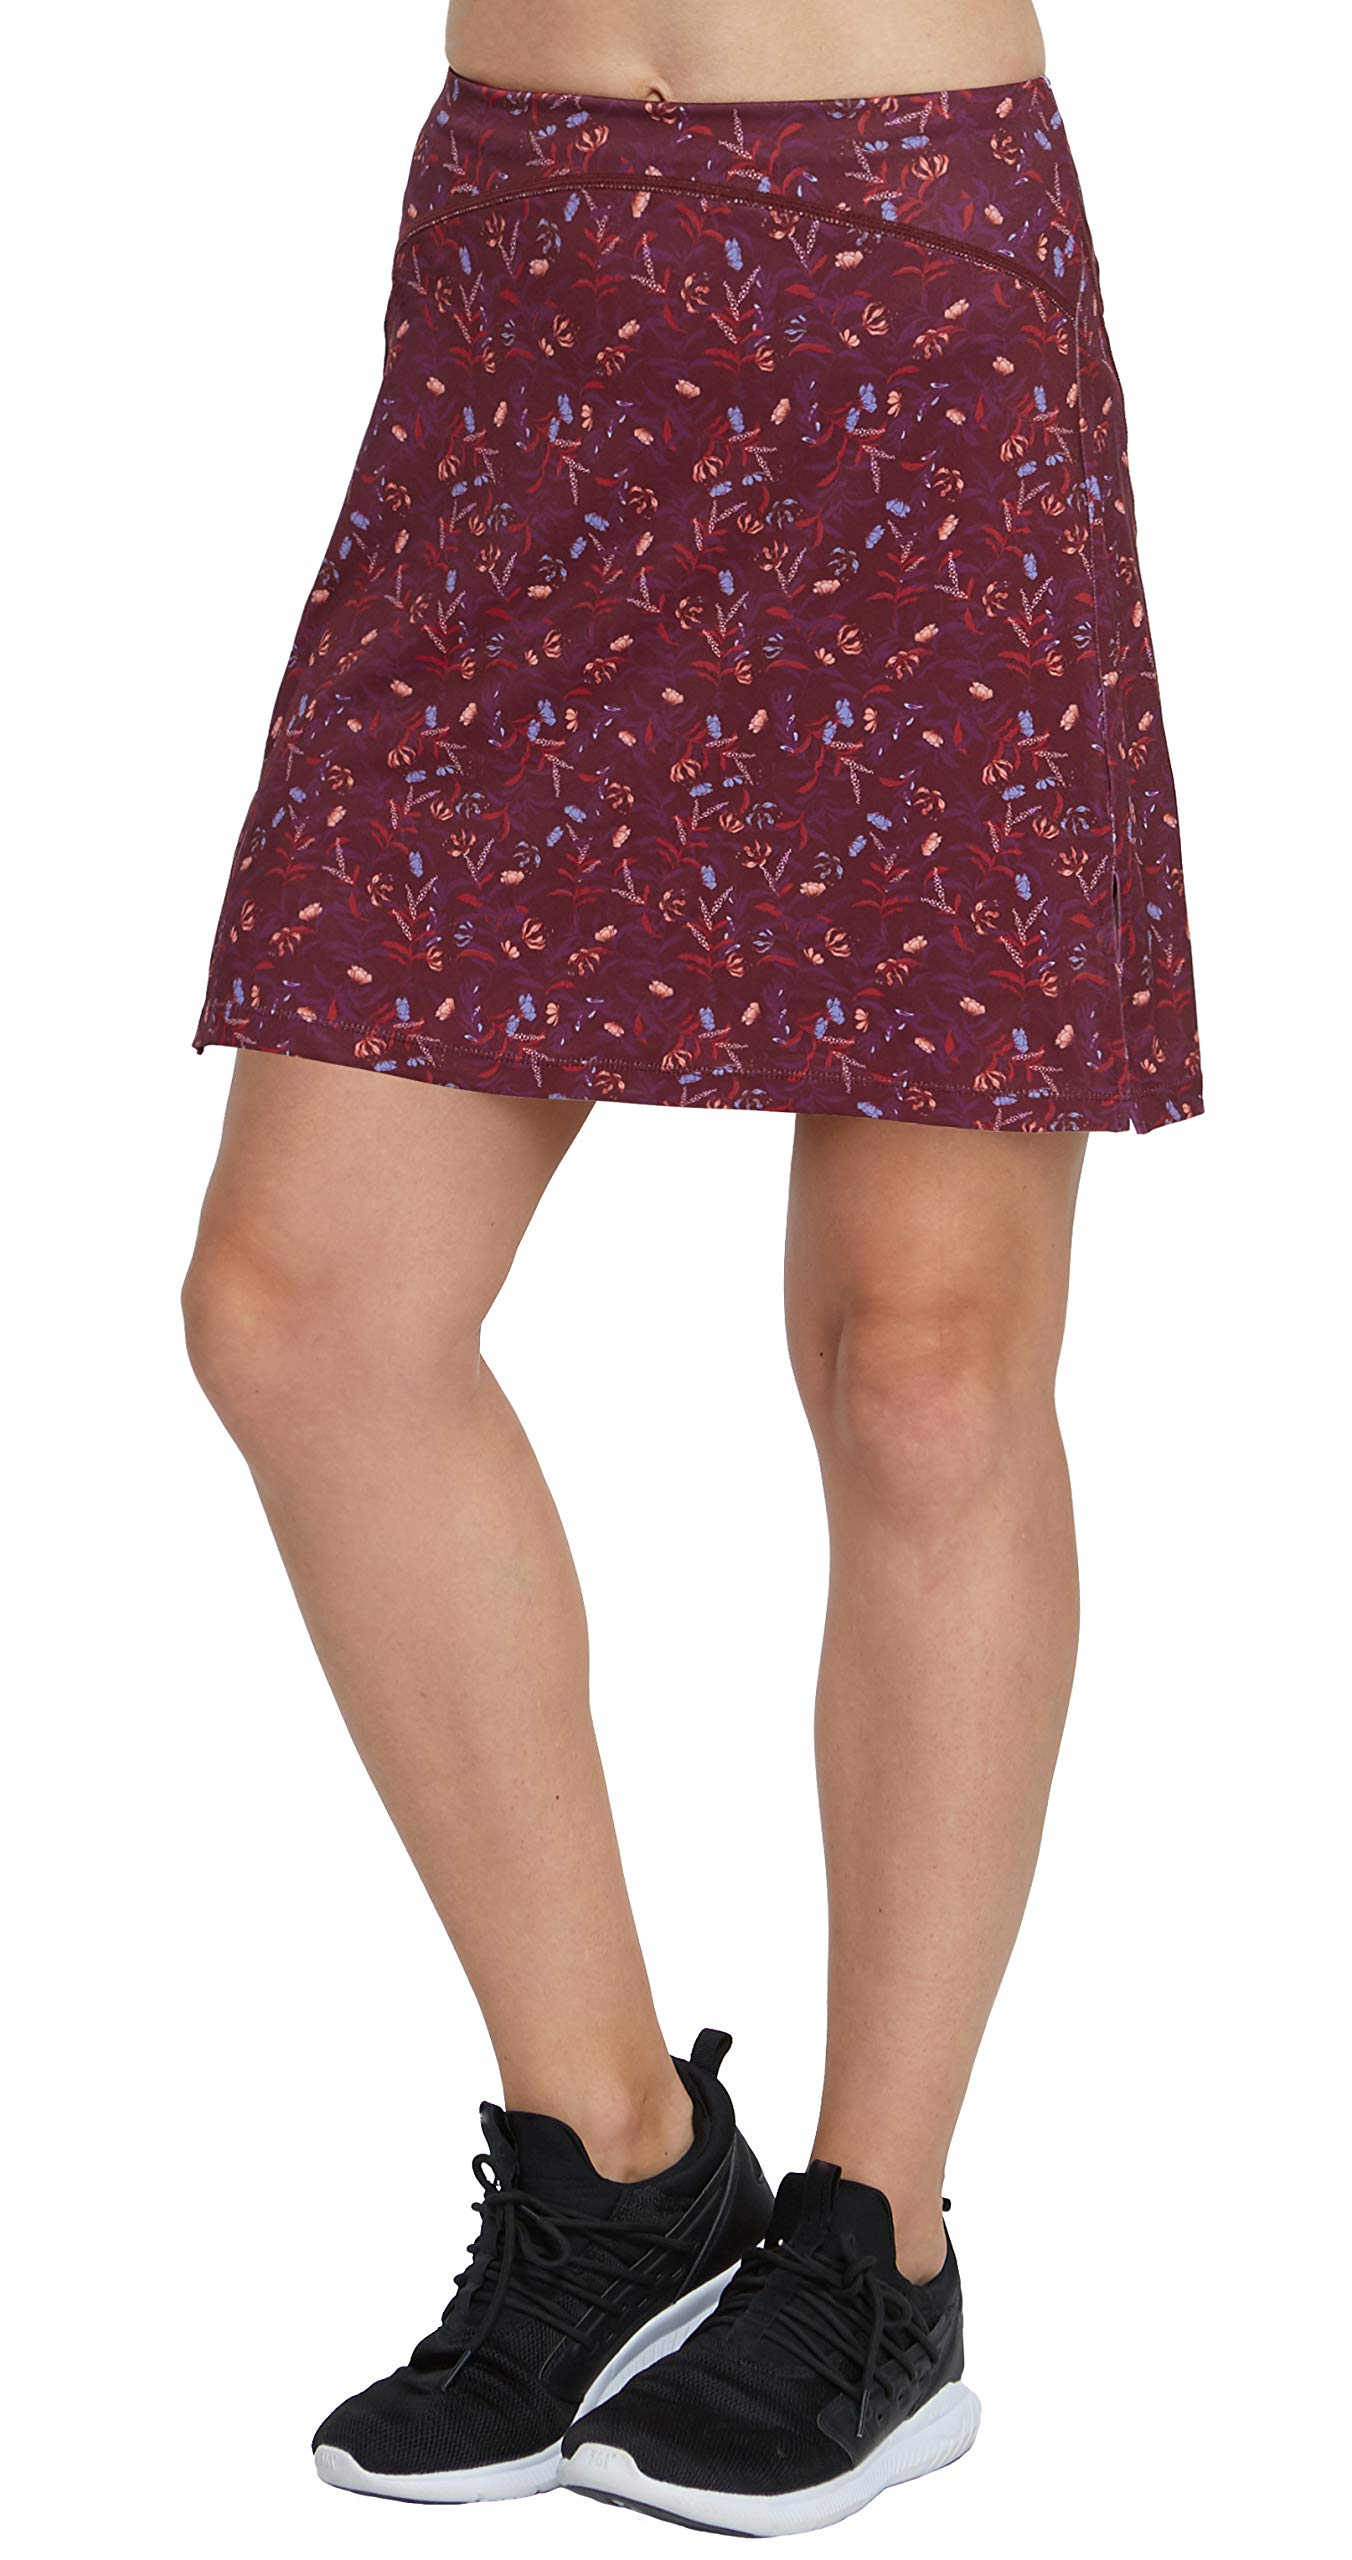 slimour Women Print Golf Skirt Travel Skirts with Pockets Swim Skirt High Waist with Shorts Red Iris L by slimour